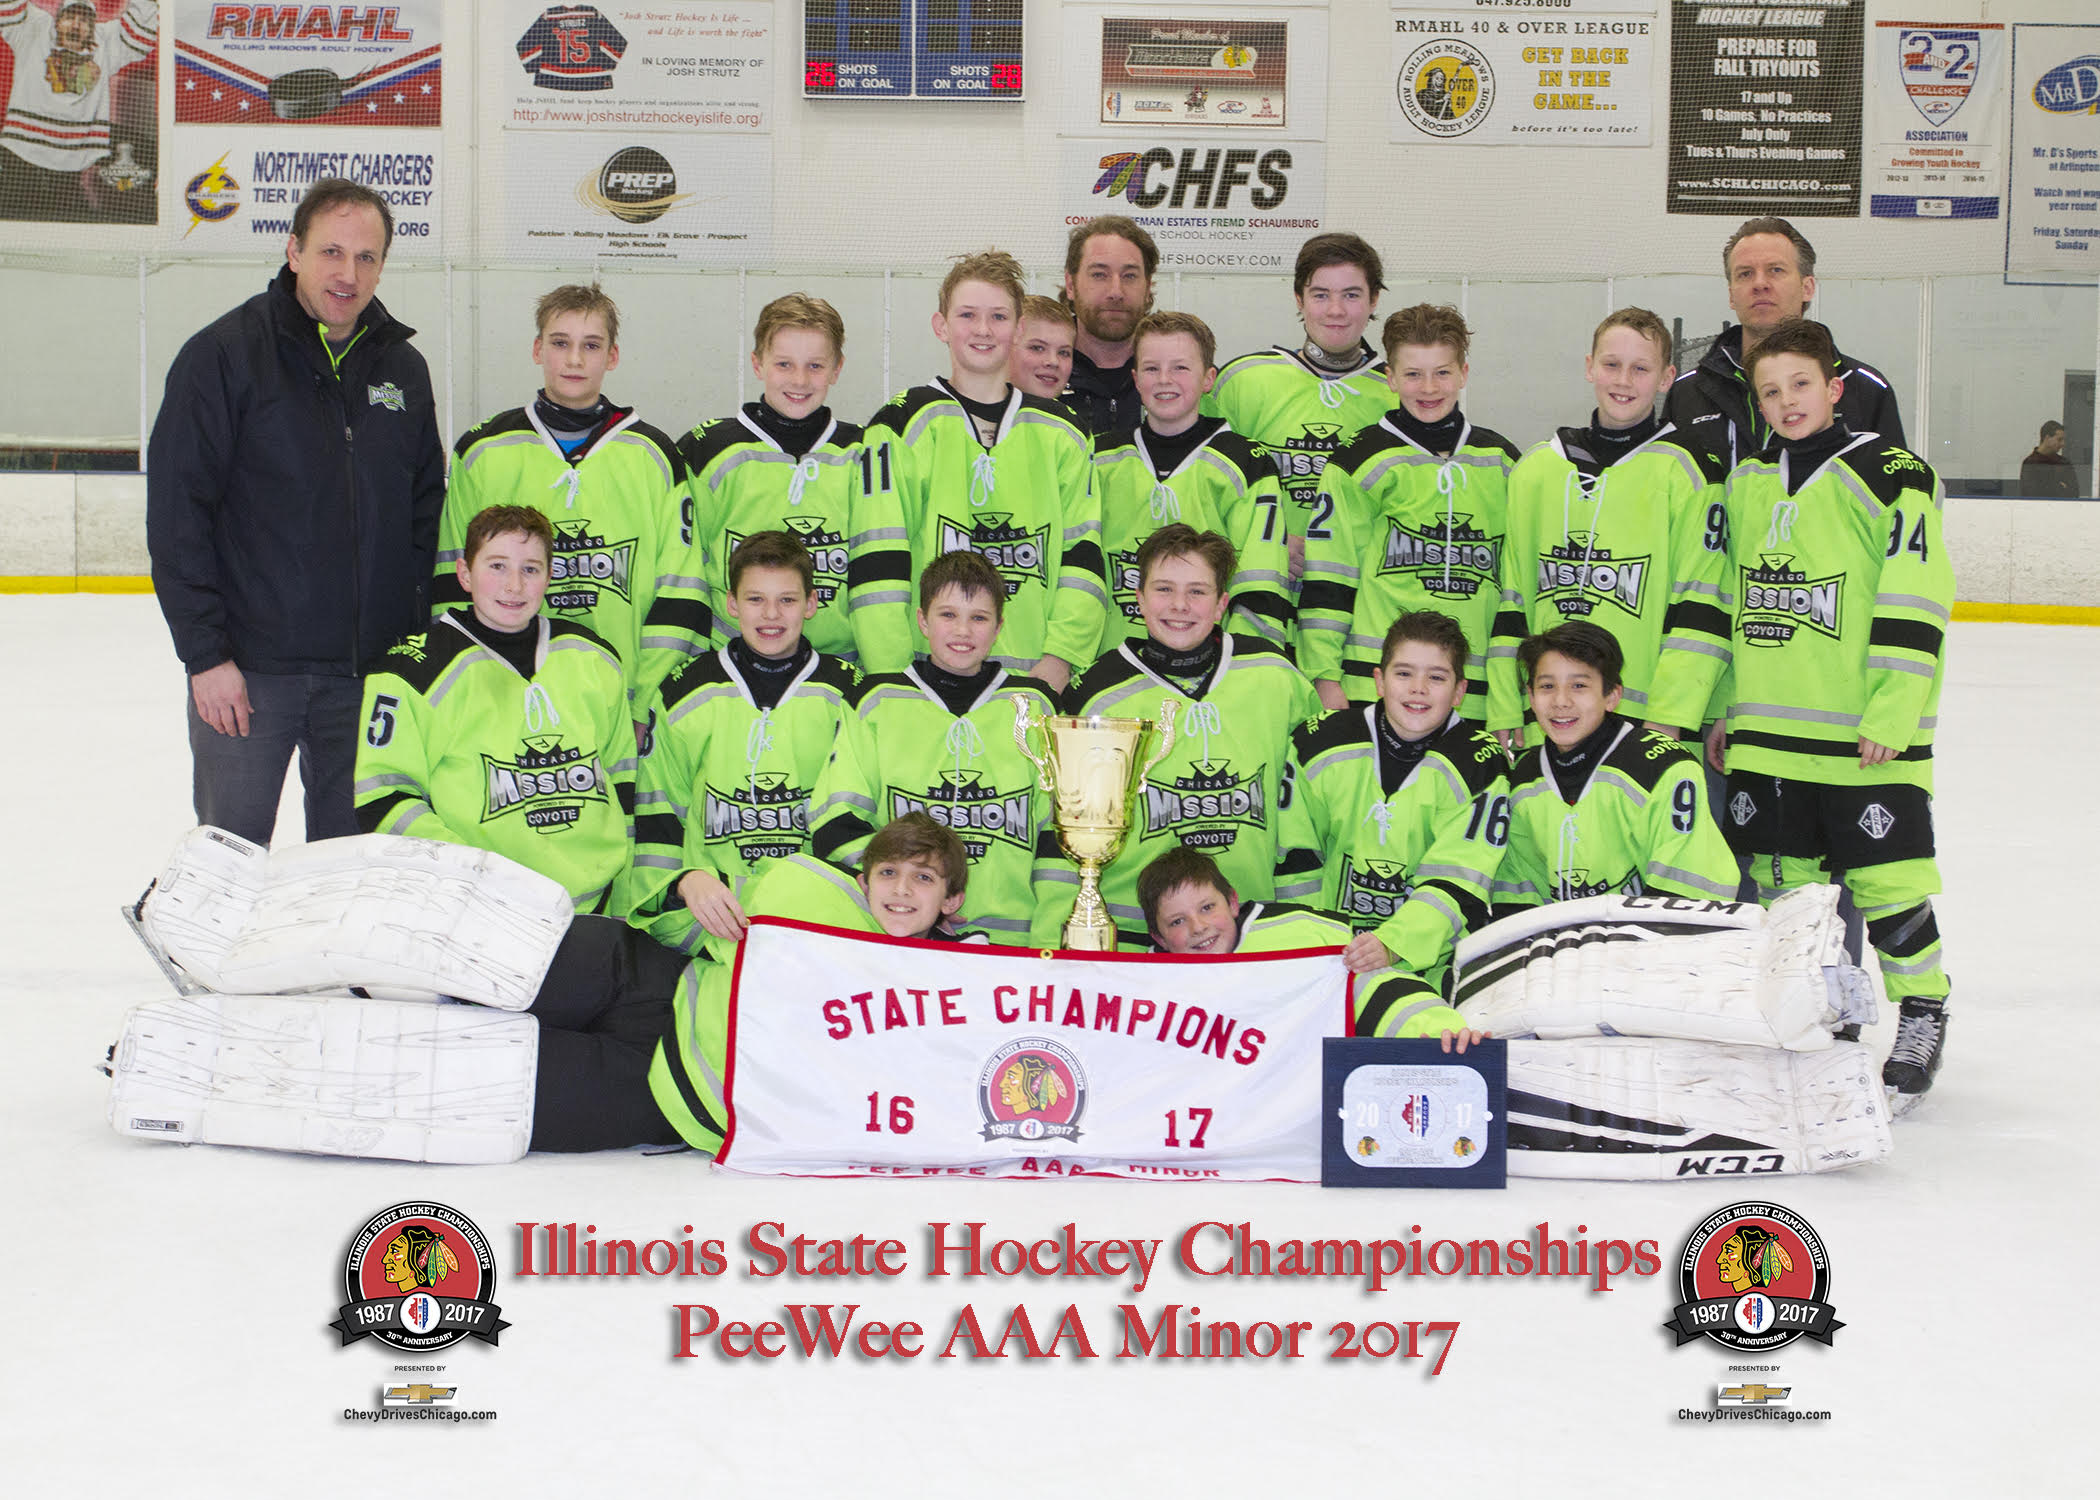 Mission 2005's State Champions